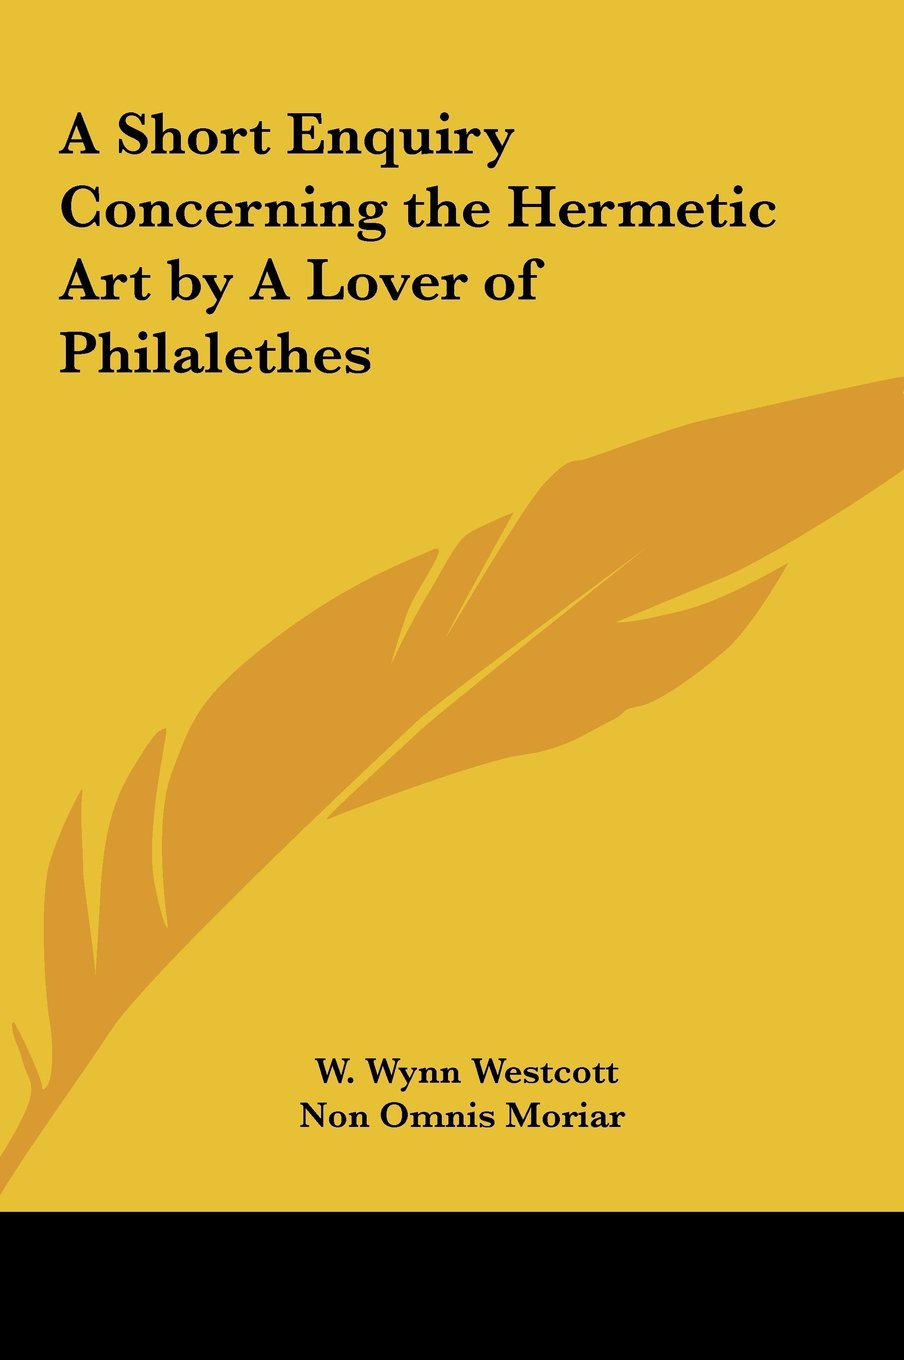 A Short Enquiry Concerning the Hermetic Art by A Lover of Philalethes PDF